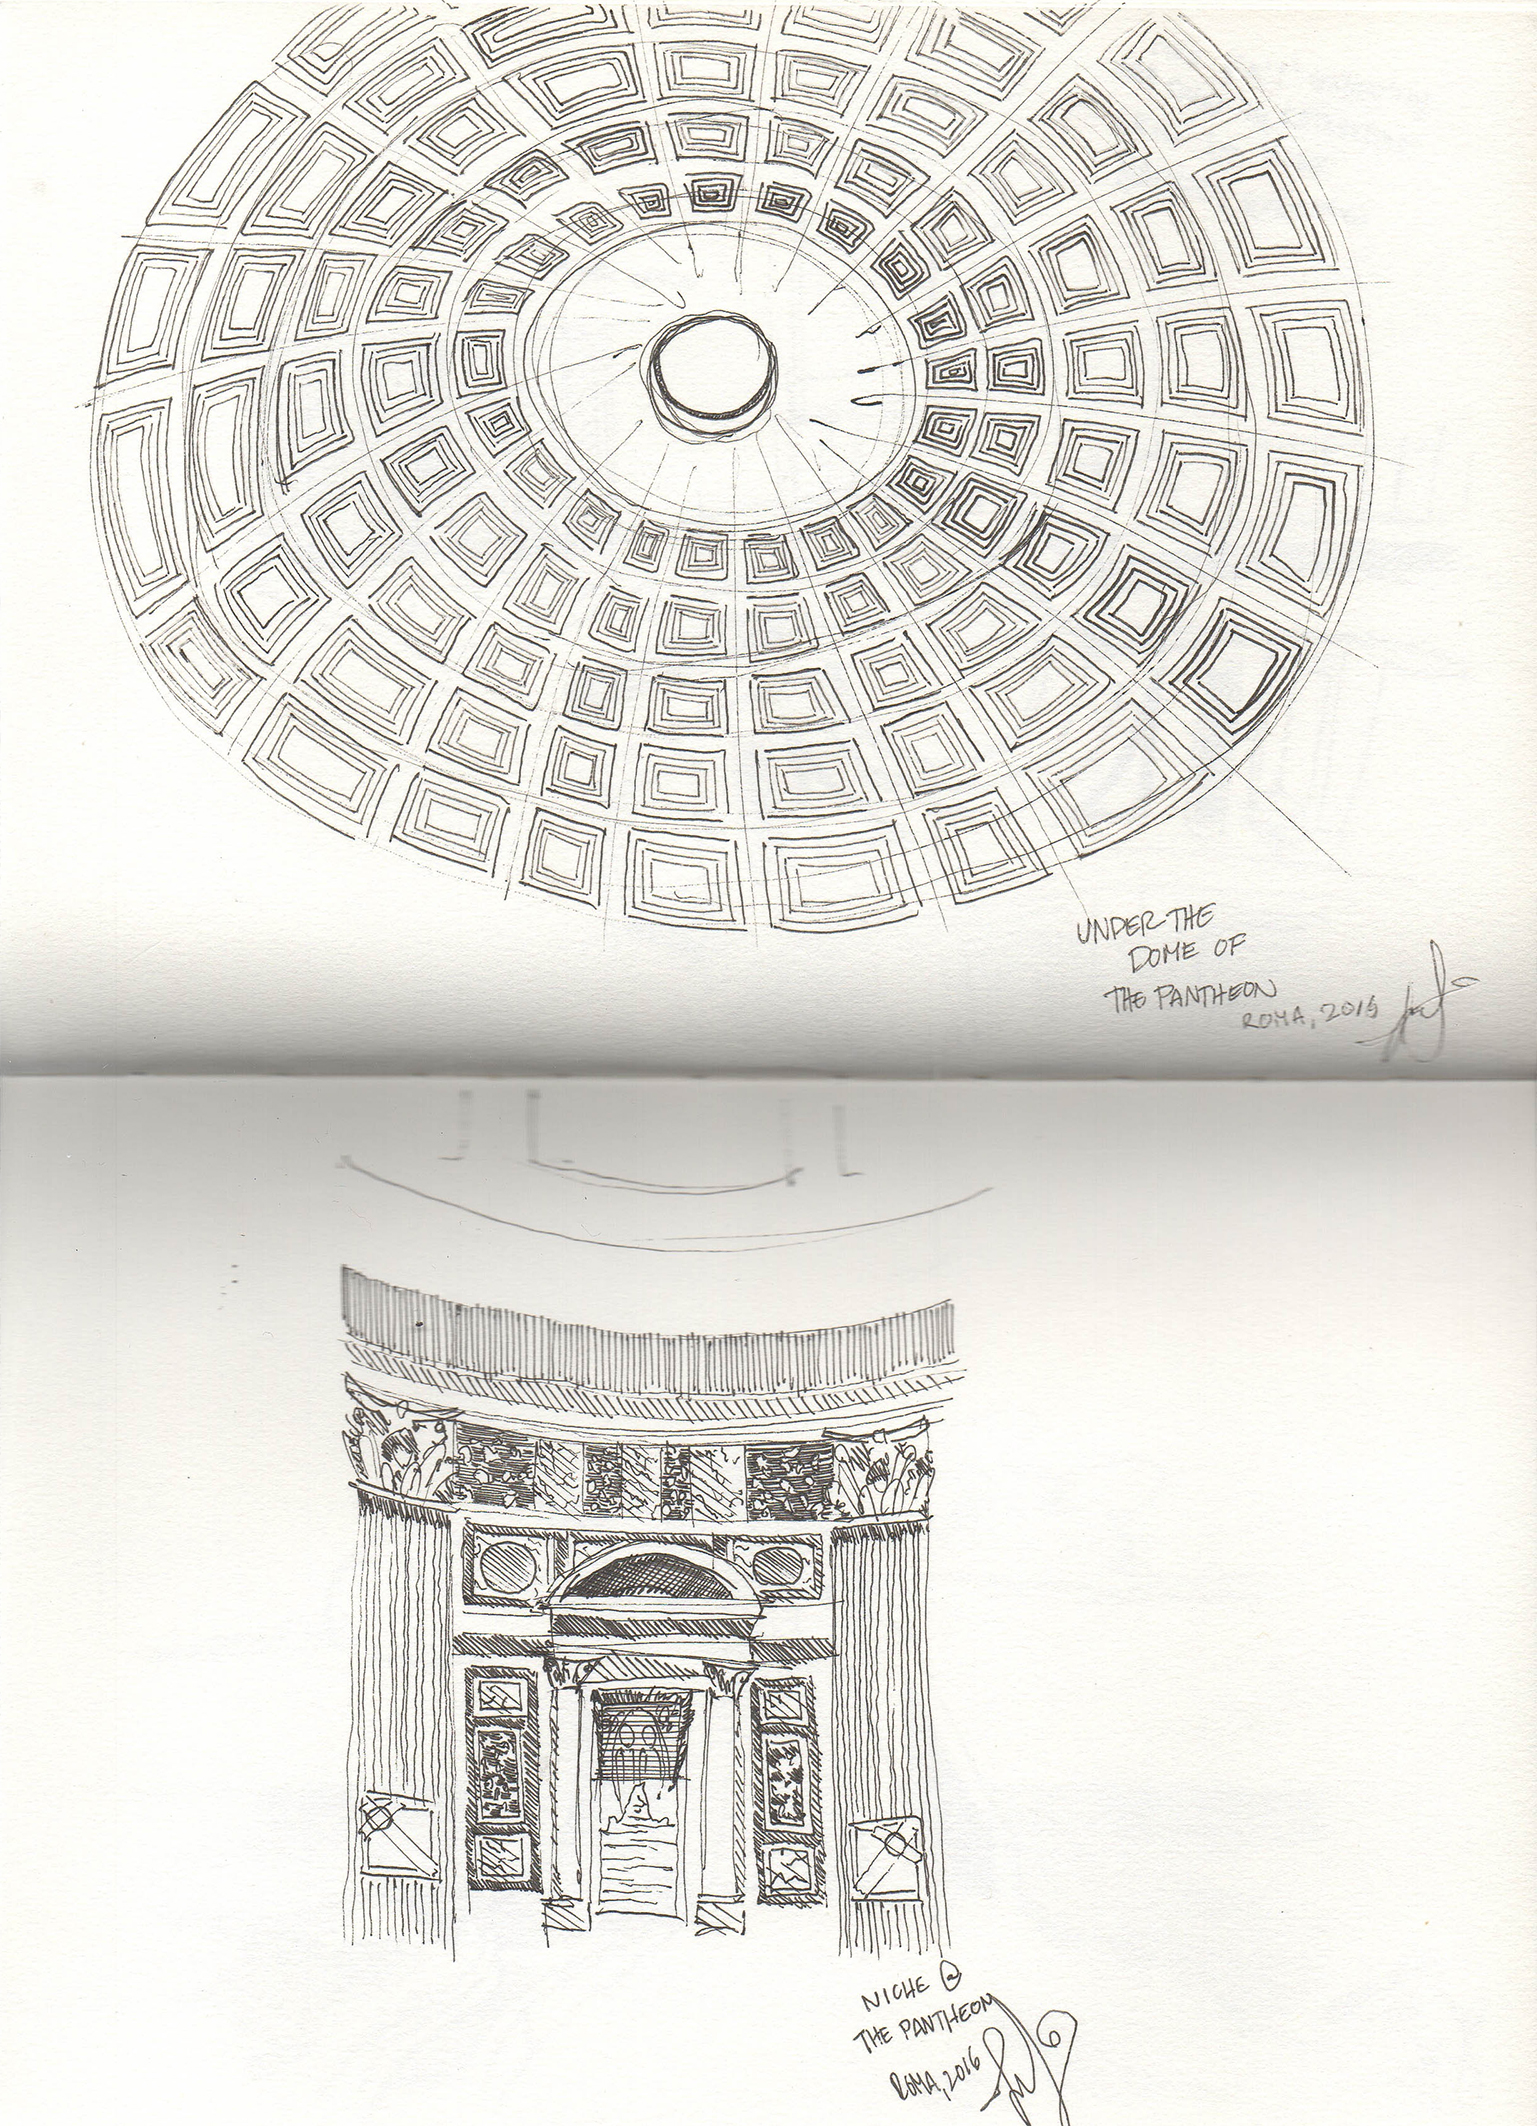 Rome-Sketchbook-Edited-Scans-50-forweb.jpg